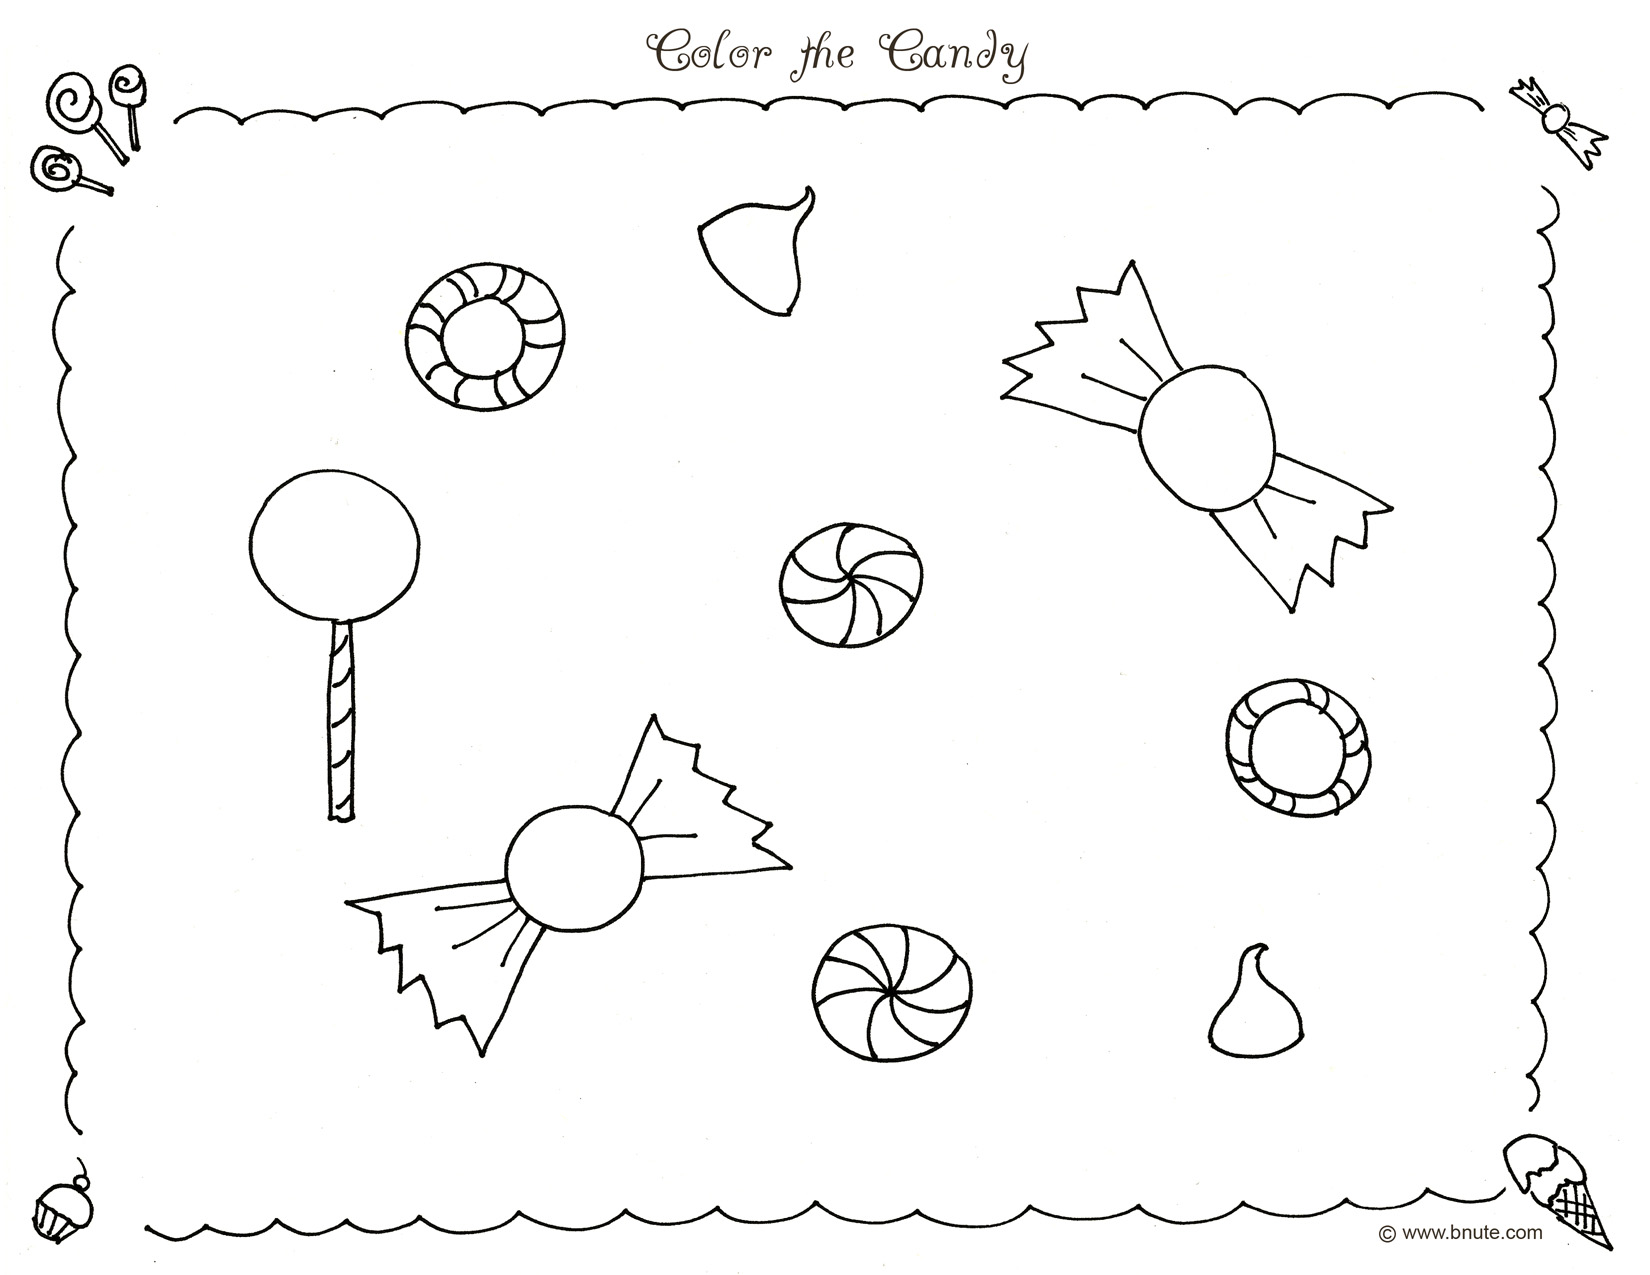 color the candy coloring page by bnute productions noddy coloring